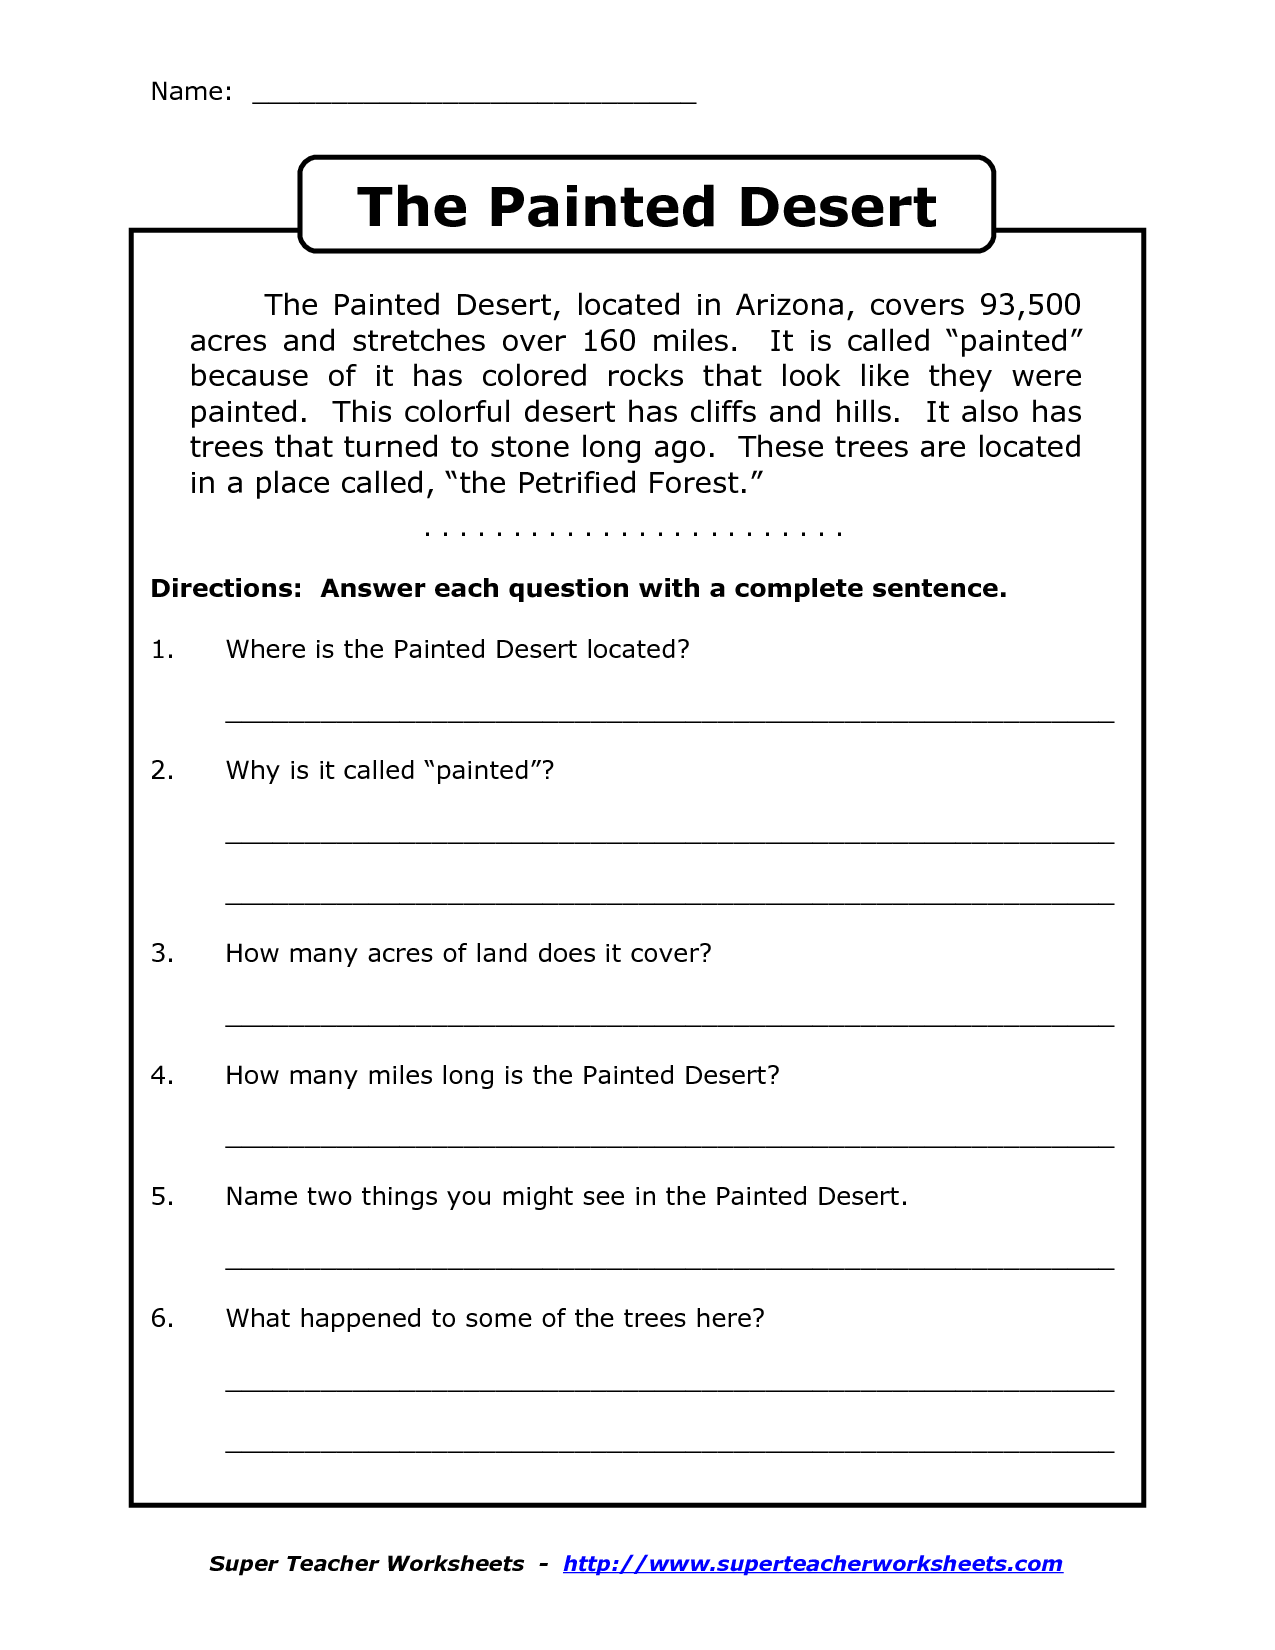 Worksheets 4th Grade Reading Comprehension Worksheets Free reading worksheets for 4th grade comprehension 3 name the painted desert